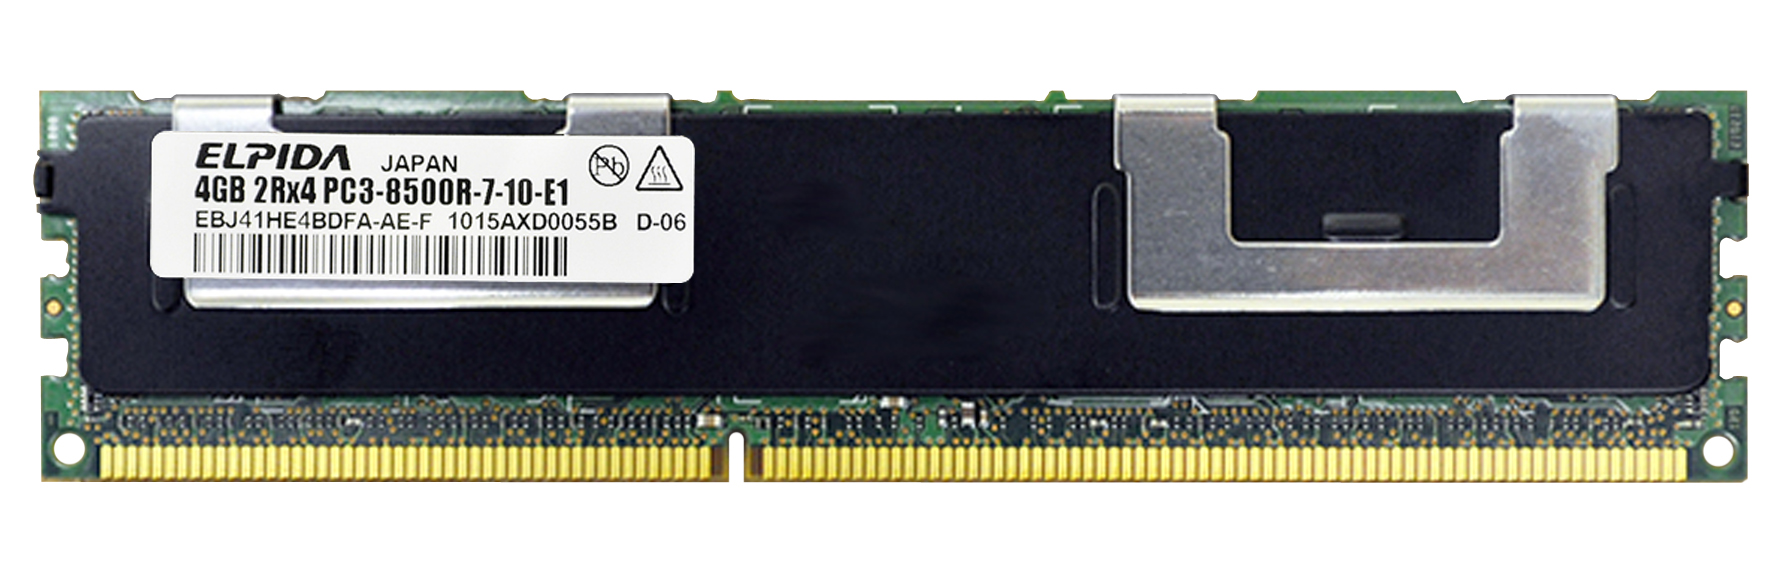 M4L-PC31066RD3D87D-4G M4L Certified 4GB 1066MHz DDR3 PC3-8500 Reg ECC CL7 240-Pin Dual Rank x8 DIMM